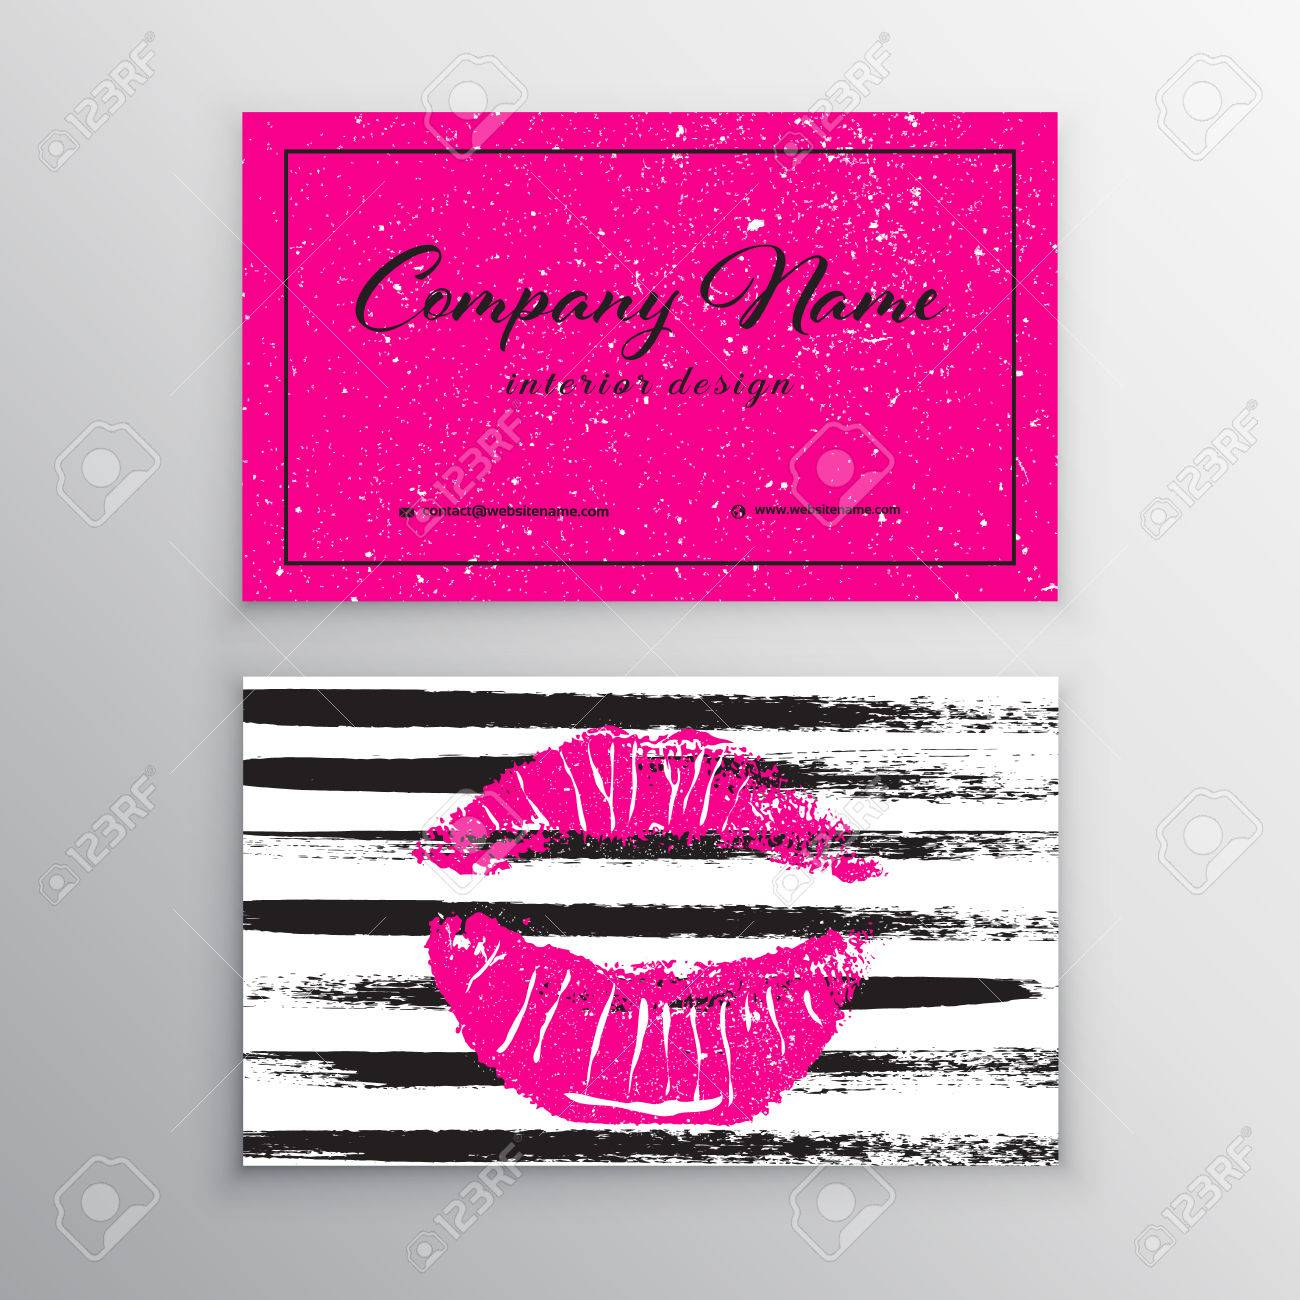 Makeup artist business card business cards template with pink makeup artist business card business cards template with pink lips print design templates for accmission Image collections